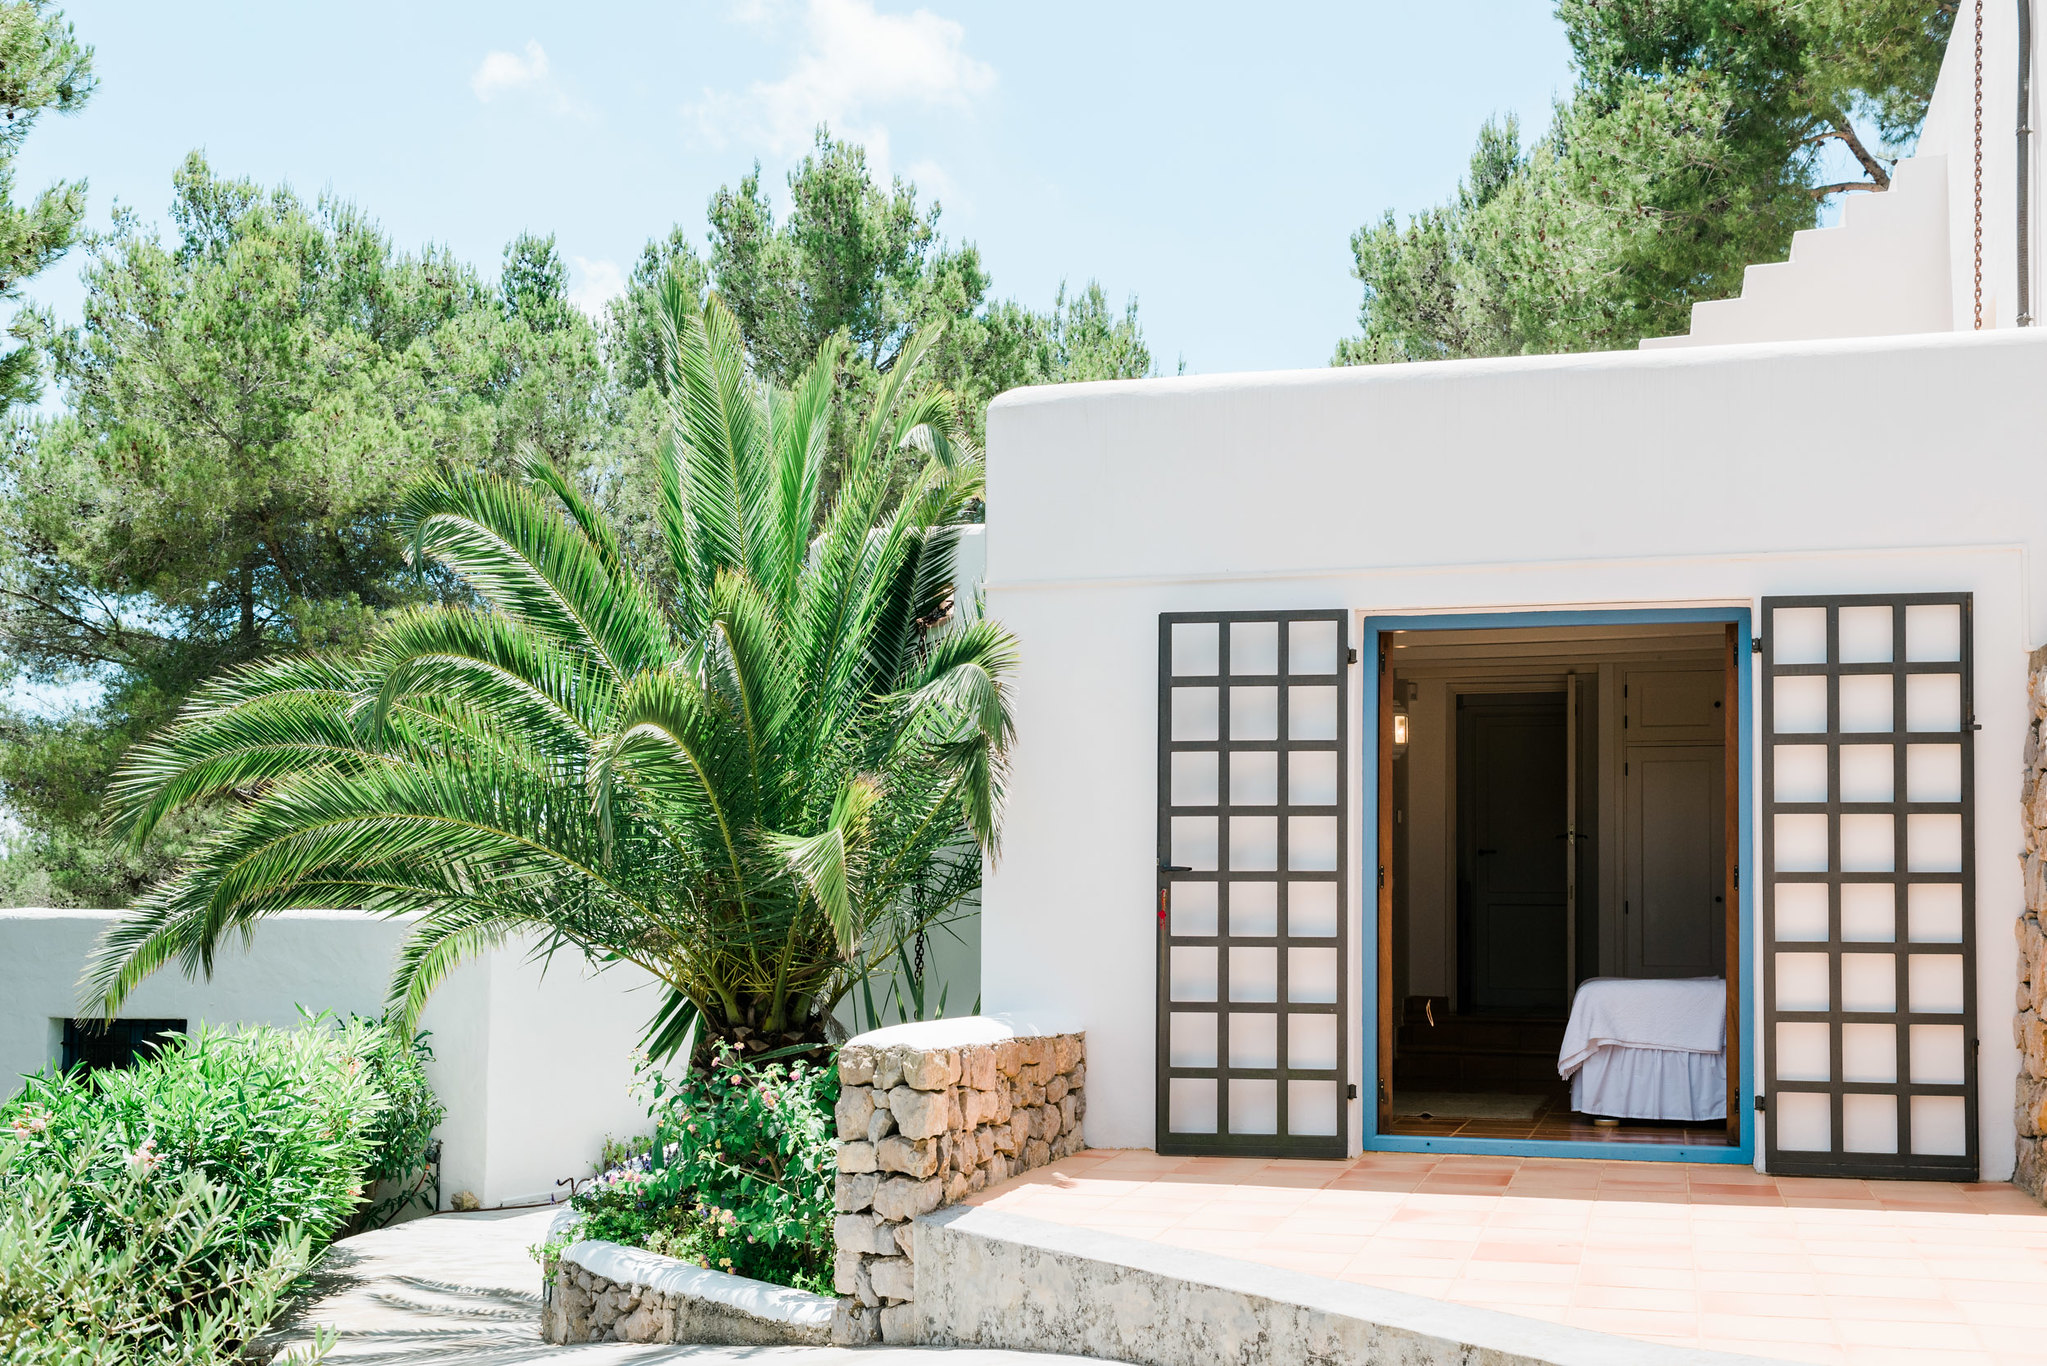 https://www.white-ibiza.com/wp-content/uploads/2020/07/white-ibiza-villas-can-madera-exterior-bedroom-three.jpg